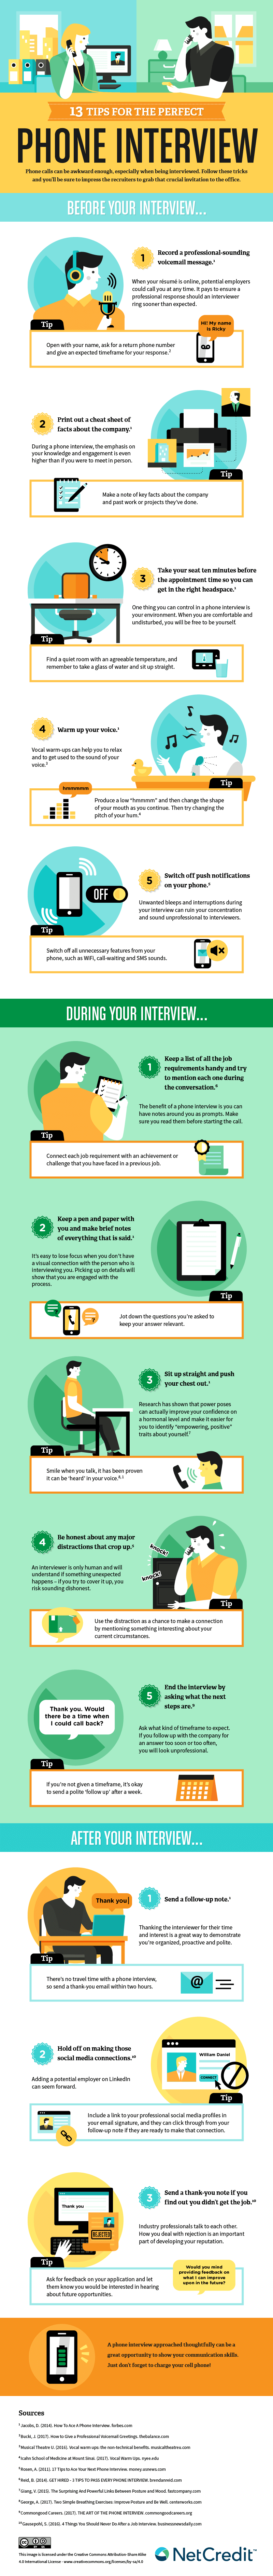 How to Master a Phone Interview Infographic